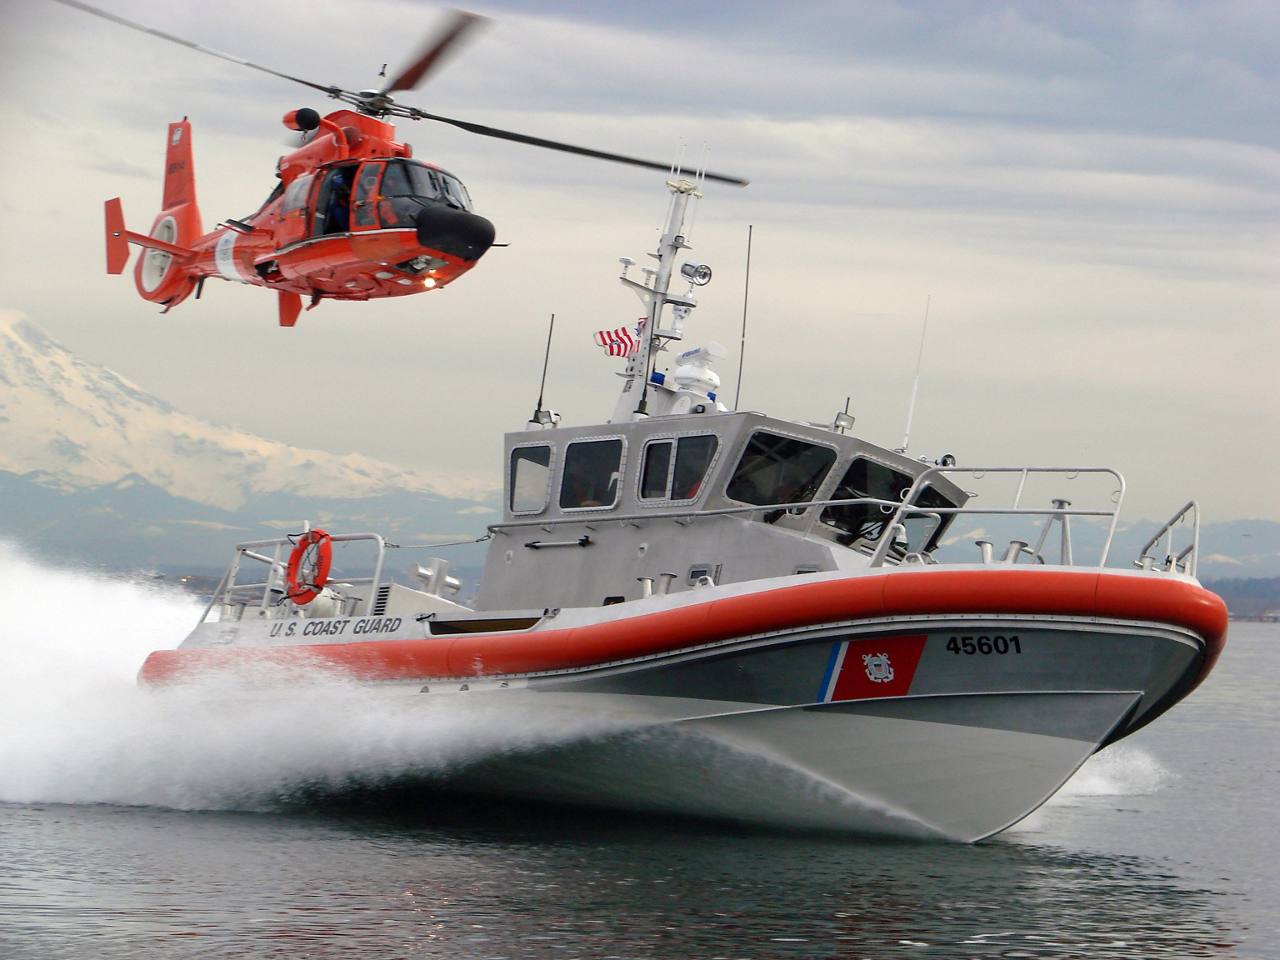 The Coast Guard service can call on more than 87,000 members, of whom 40,000 are on active duty.